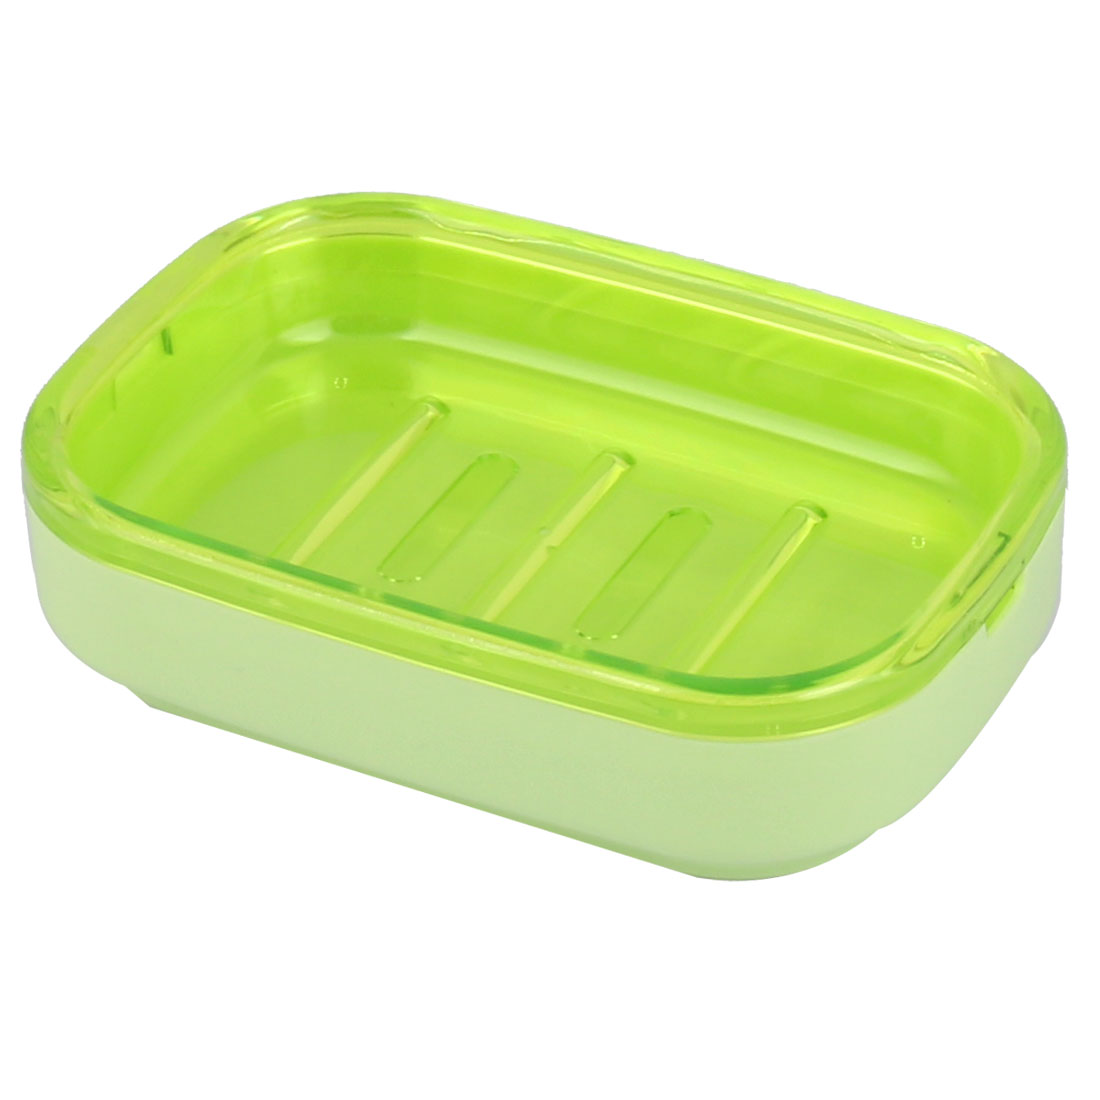 Hotel Household Bathroom Wave Base PP 2 Layers Soap Box Holder Case Container Green